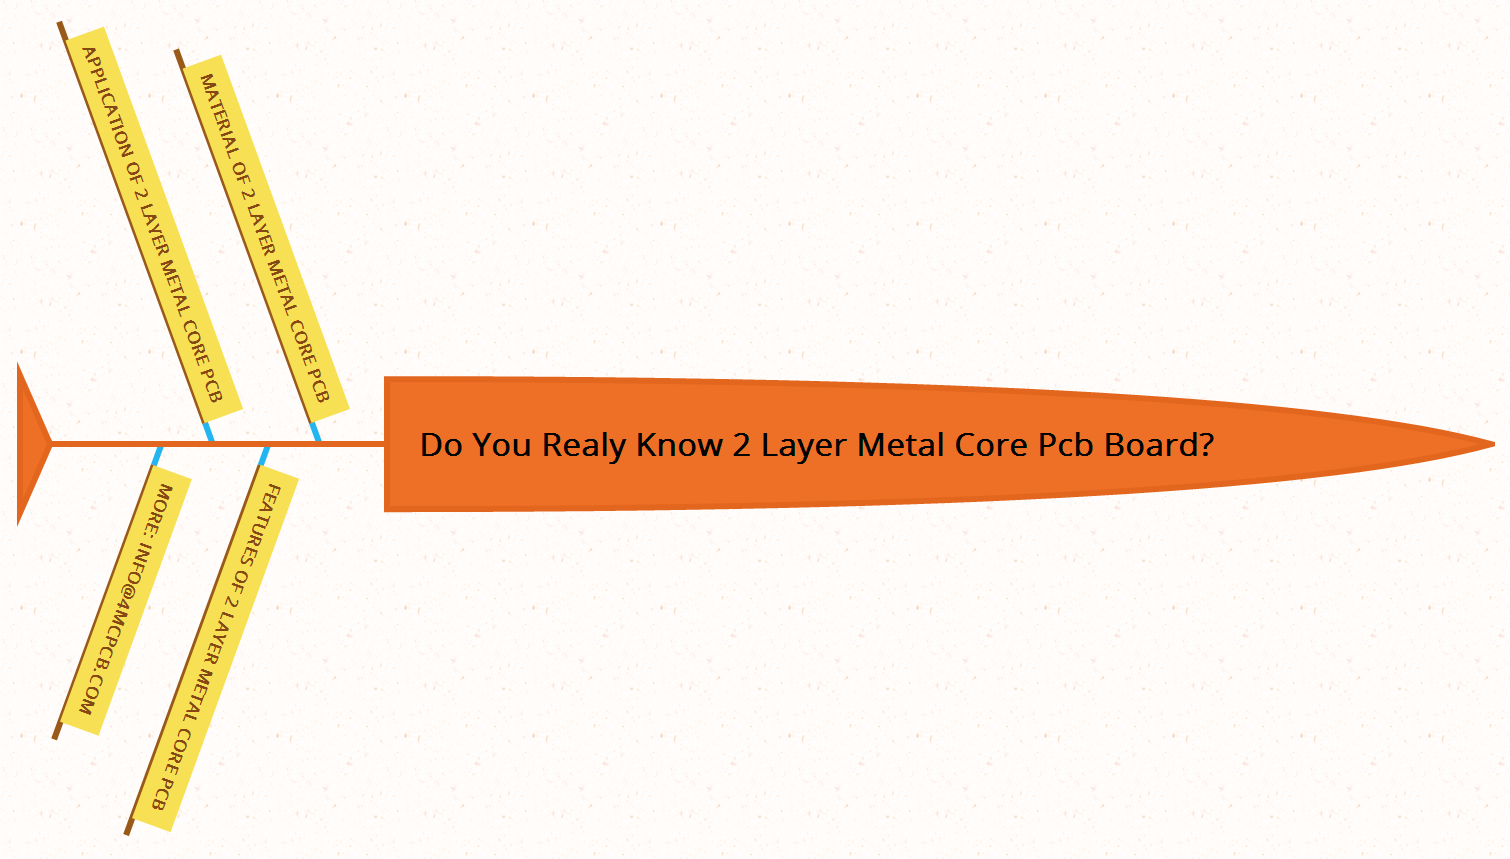 Do you realy know 2 layer Metal Core PCB board